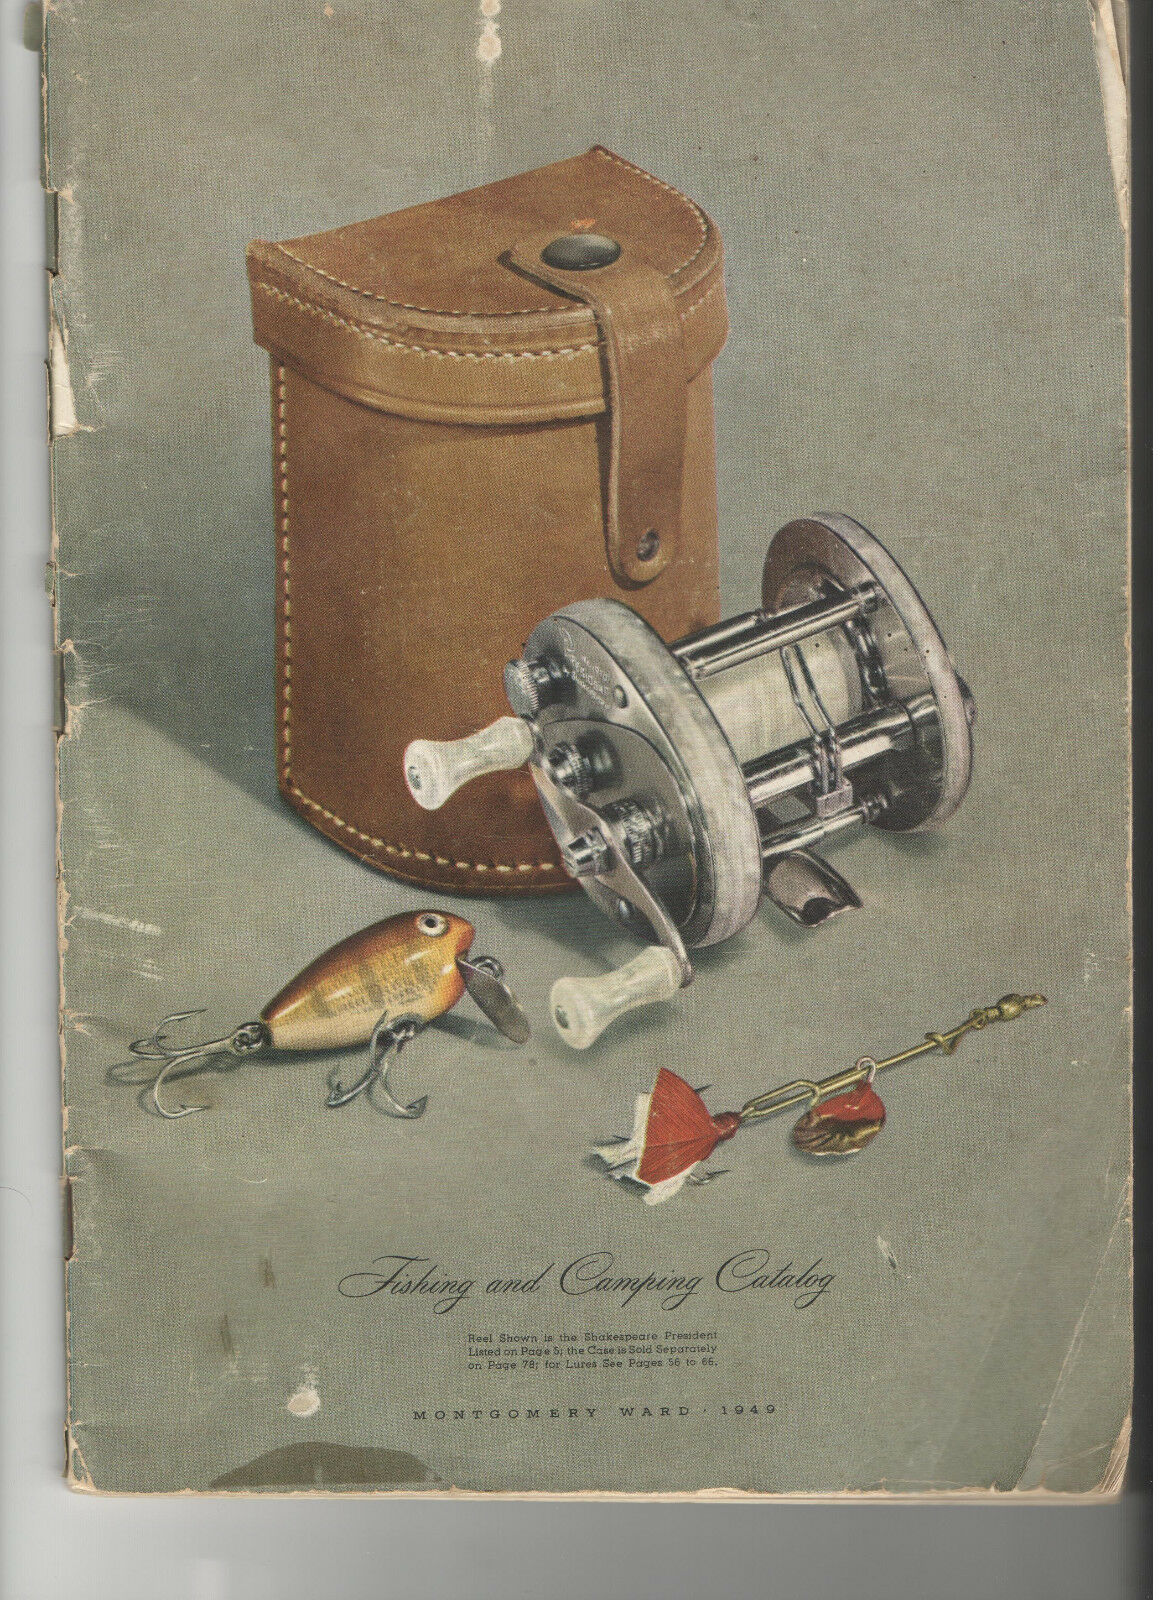 VINTAGE 1949 MONTGOMERY WARD FISHING & CAMPING CATALOG  LURES REELS RODS KNIVES